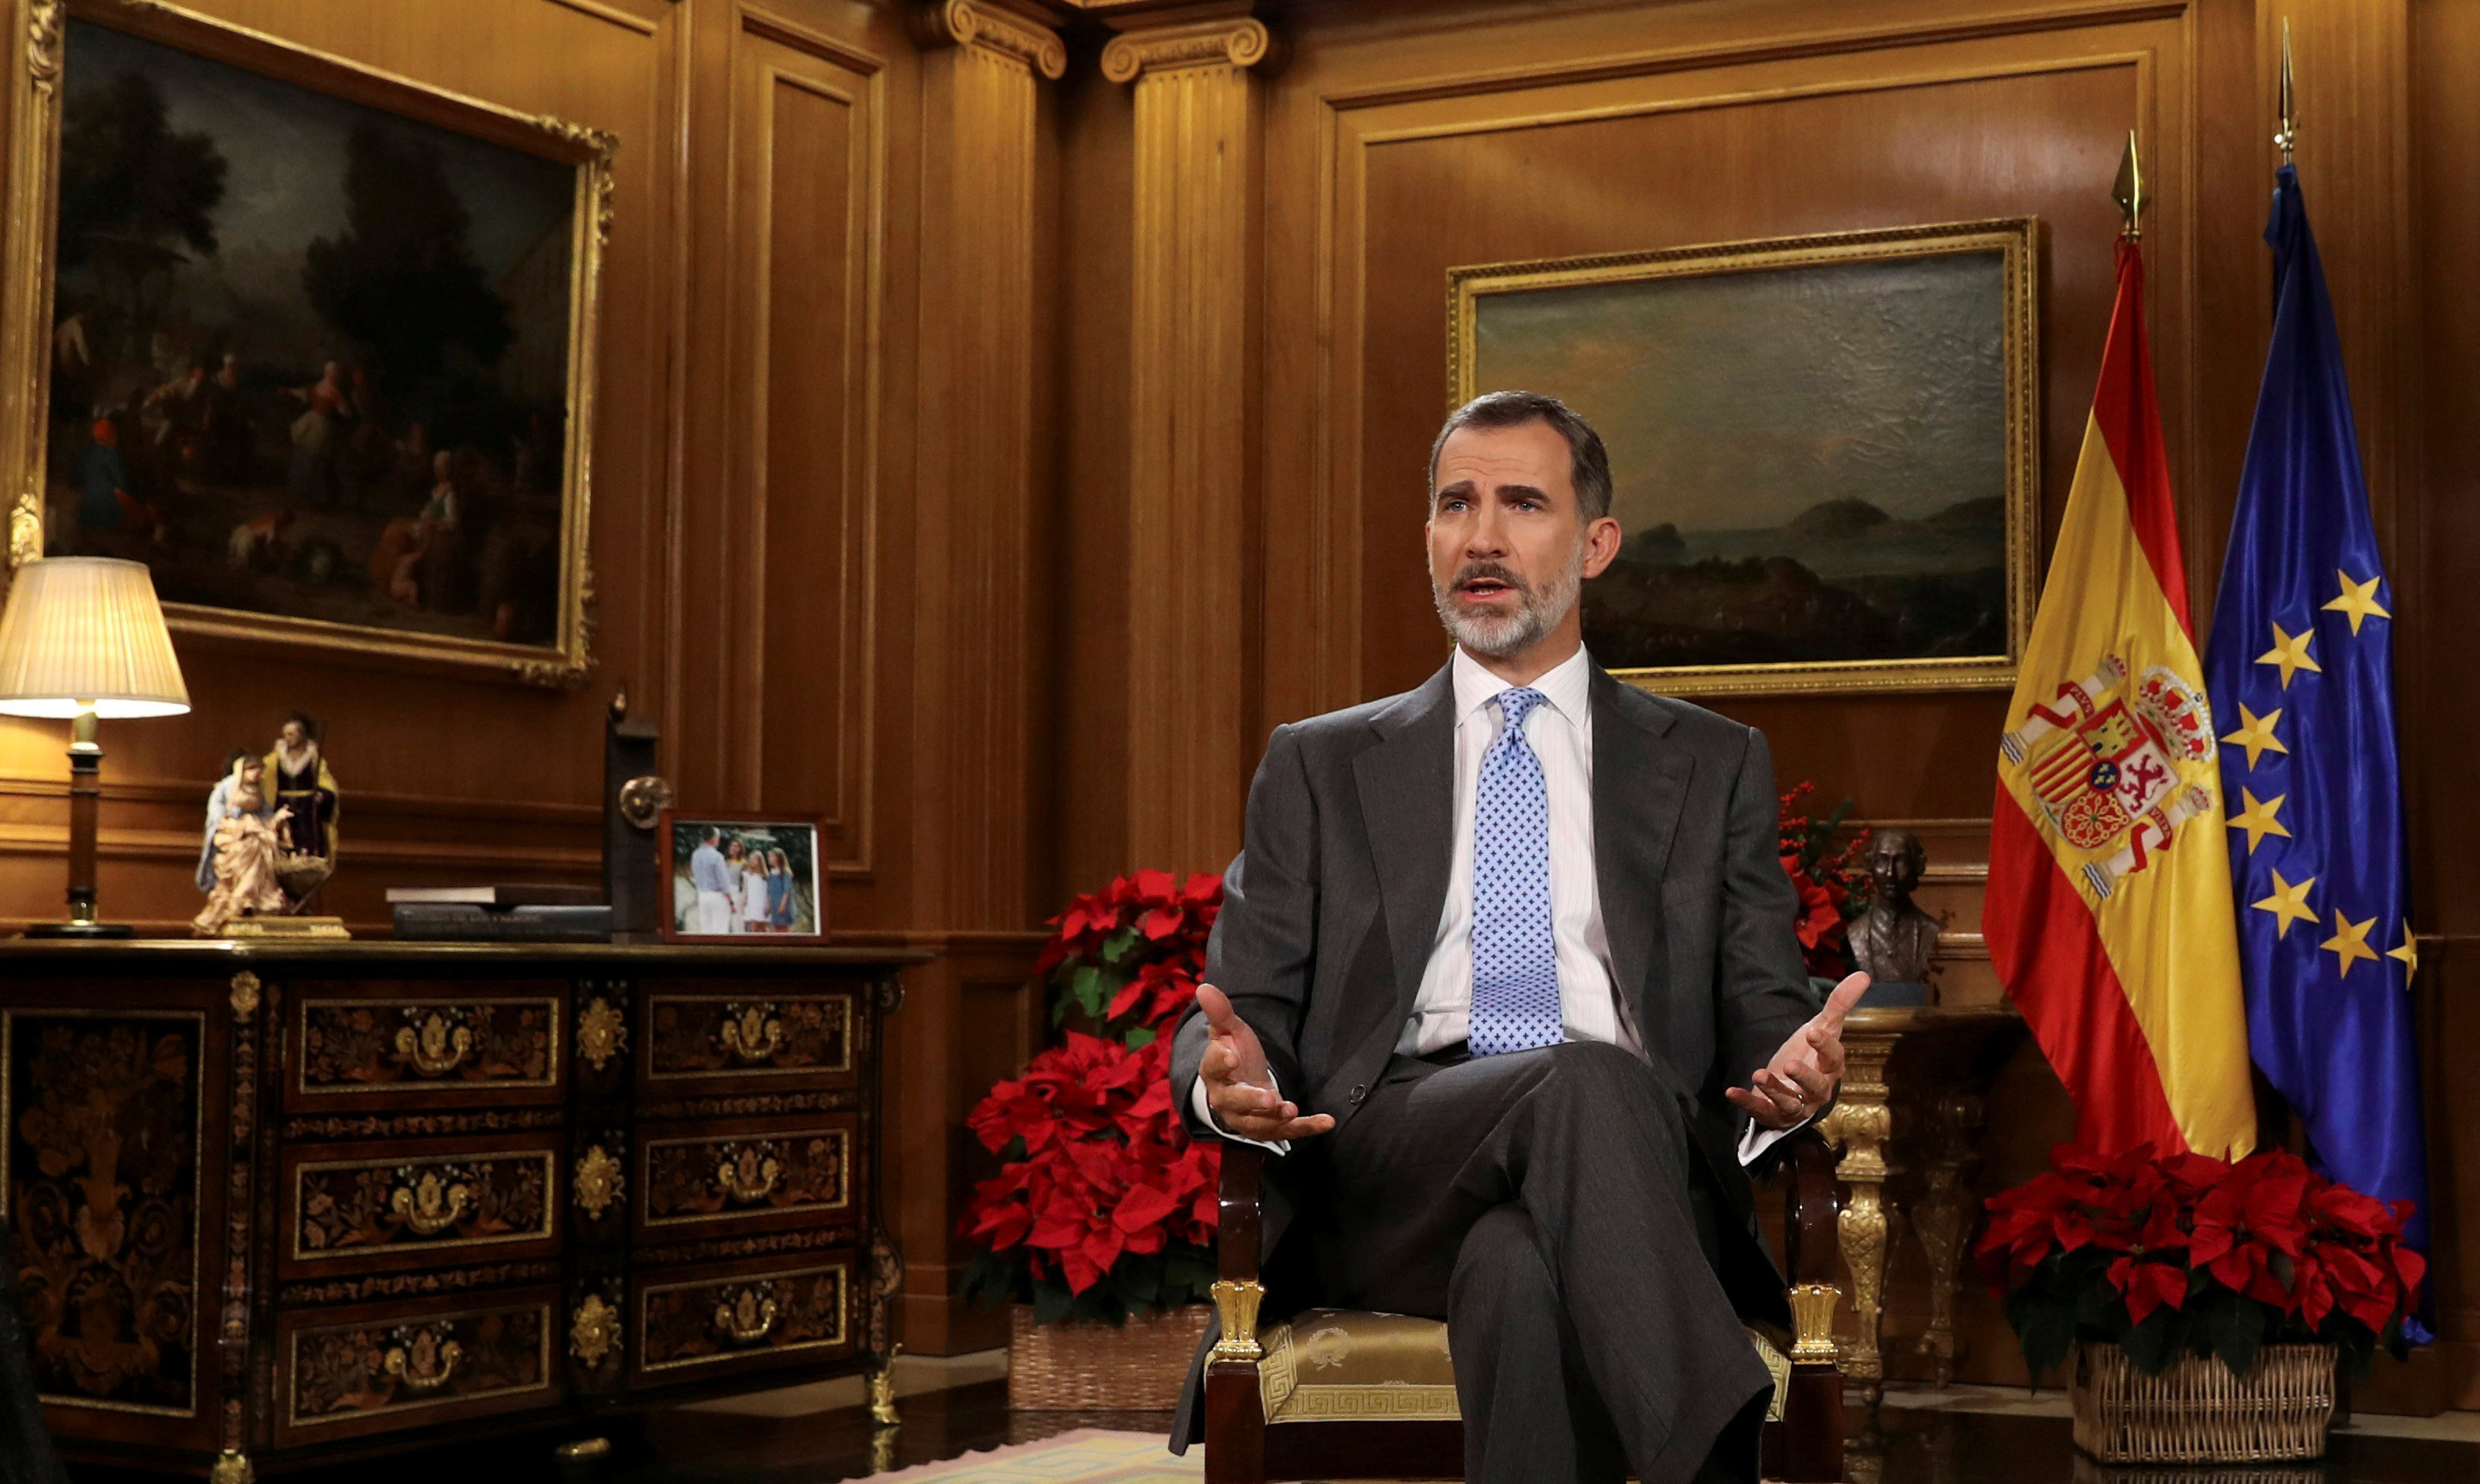 Spain's King Felipe VI delivers his traditional Christmas address at Zarzuela Palace in Madrid, Spain, December 23, 2017 in this photo released December 24, 2017. — Reuters pic